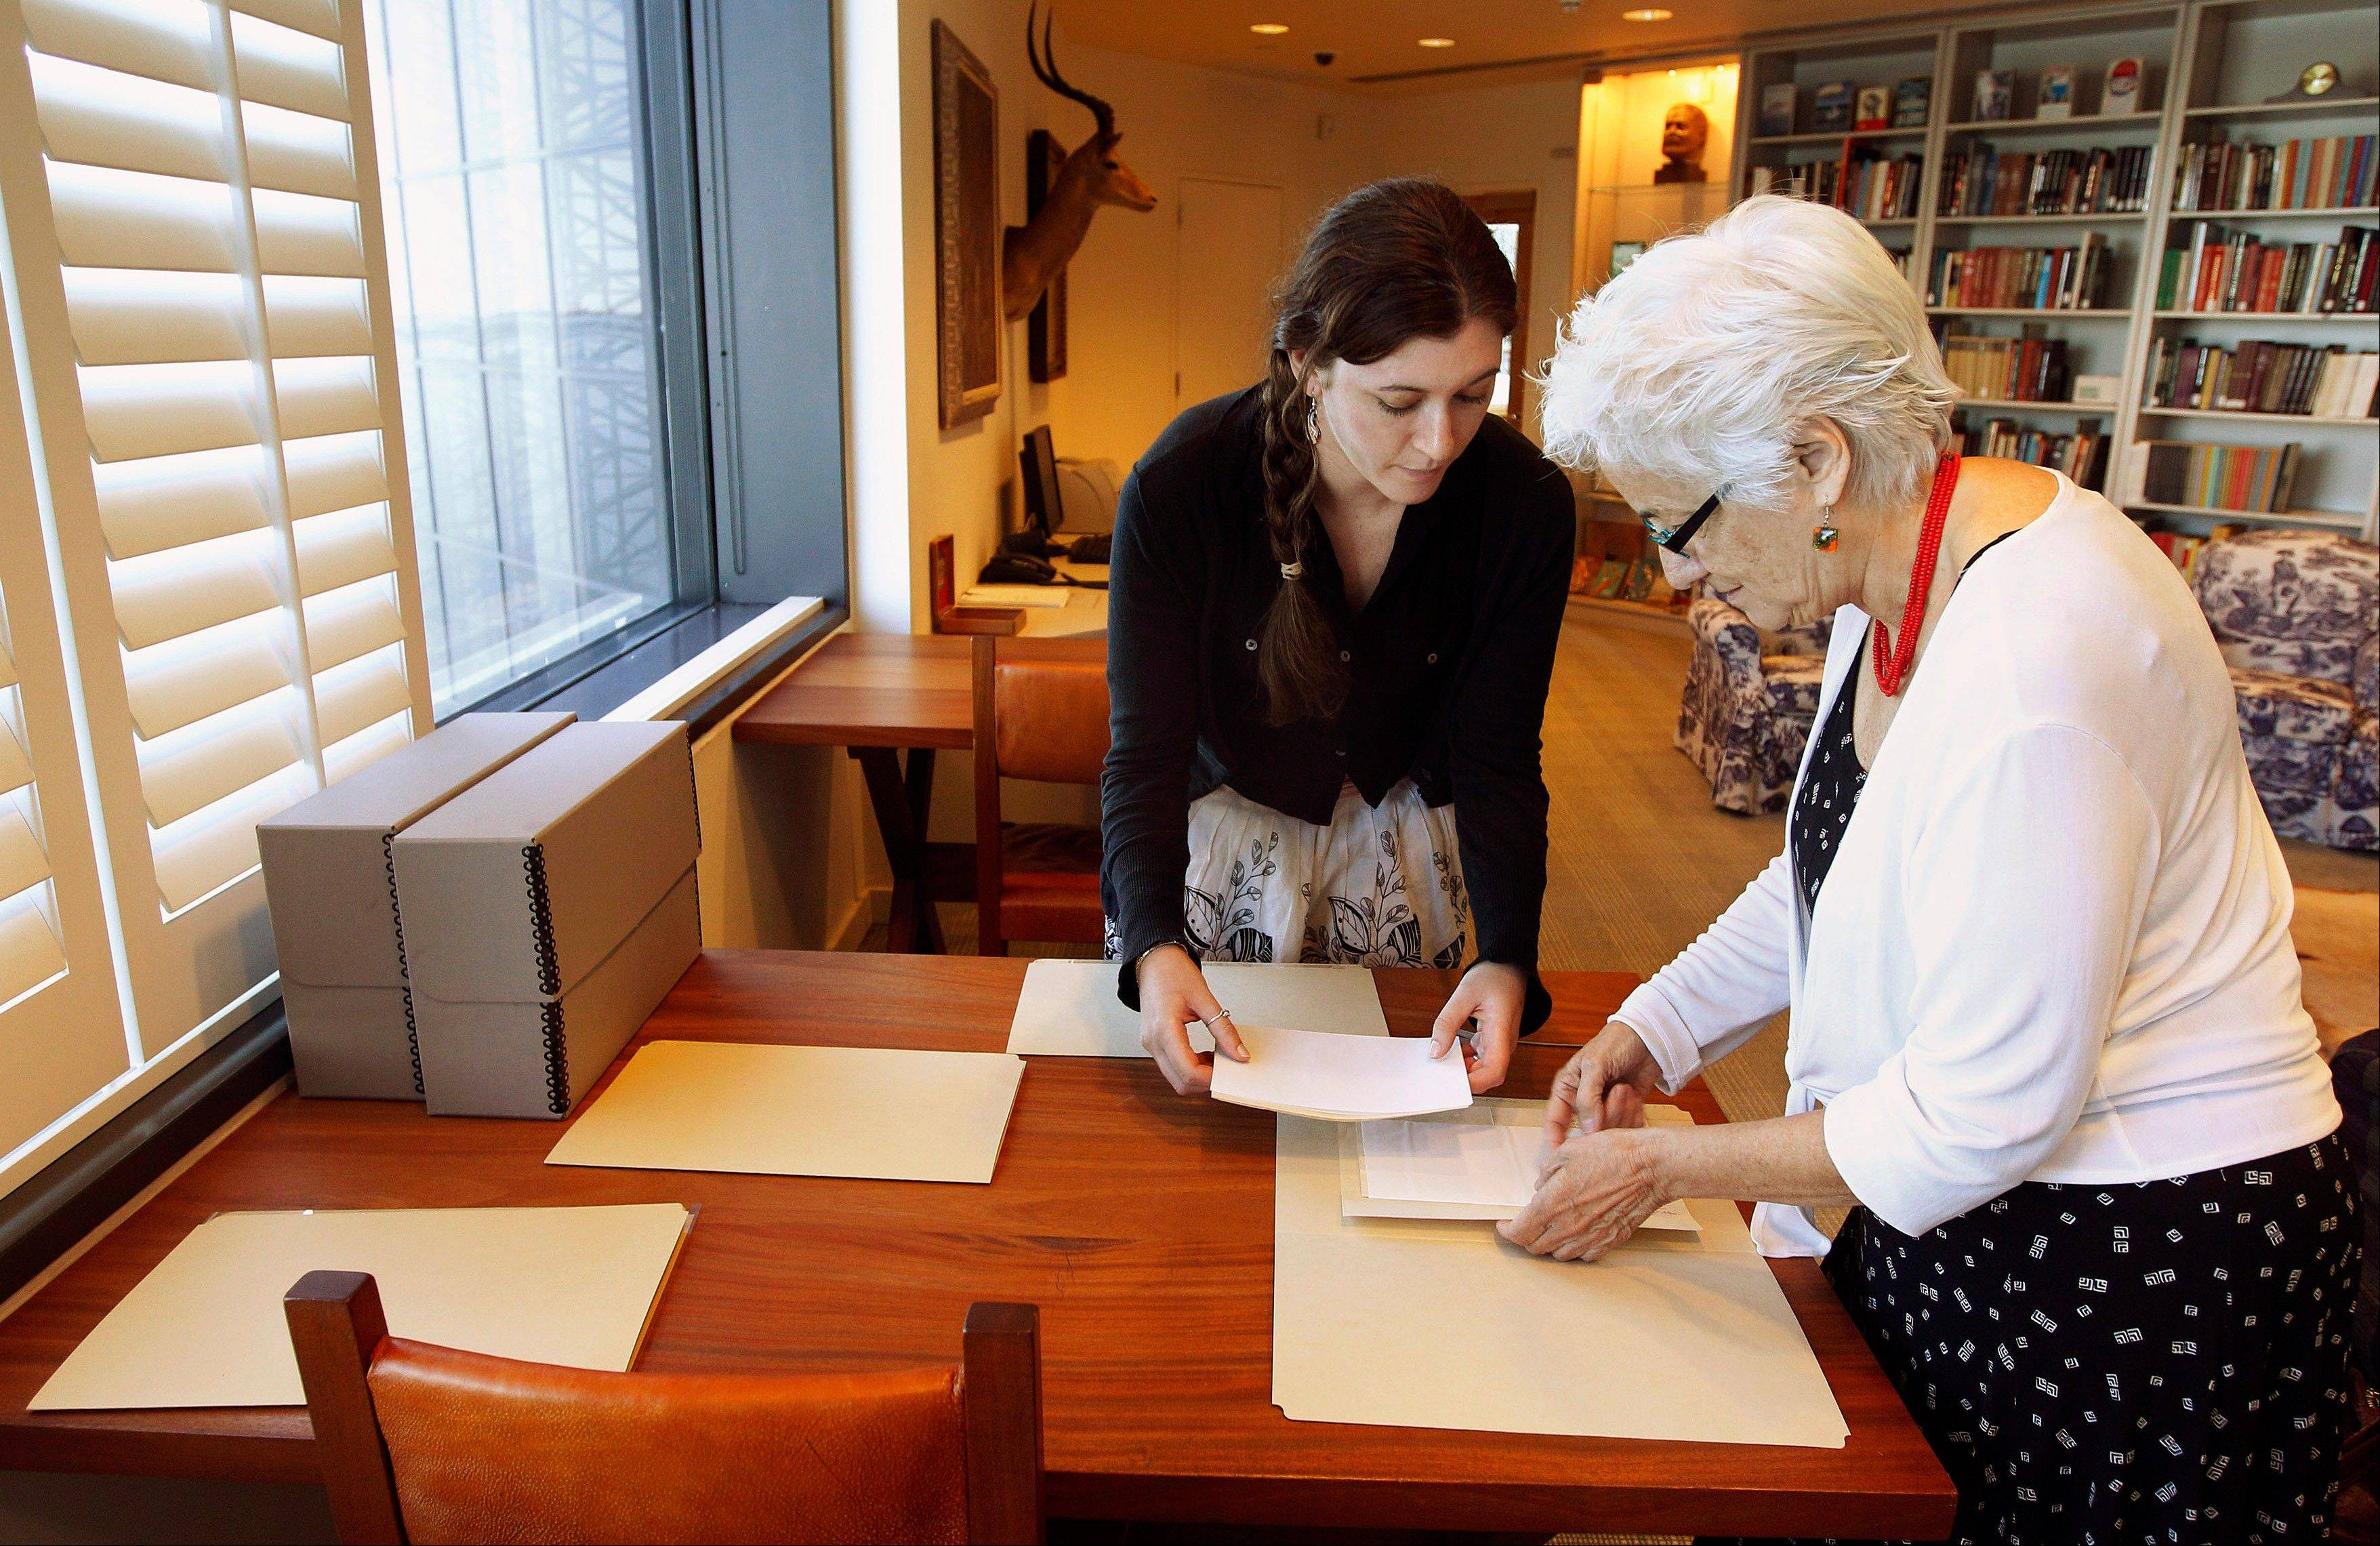 Hemingway curator Susan Wrynn, right, and intern Jessica Green collate documents from the Hemingway collection at the John F. Kennedy Library and Museum in Boston.